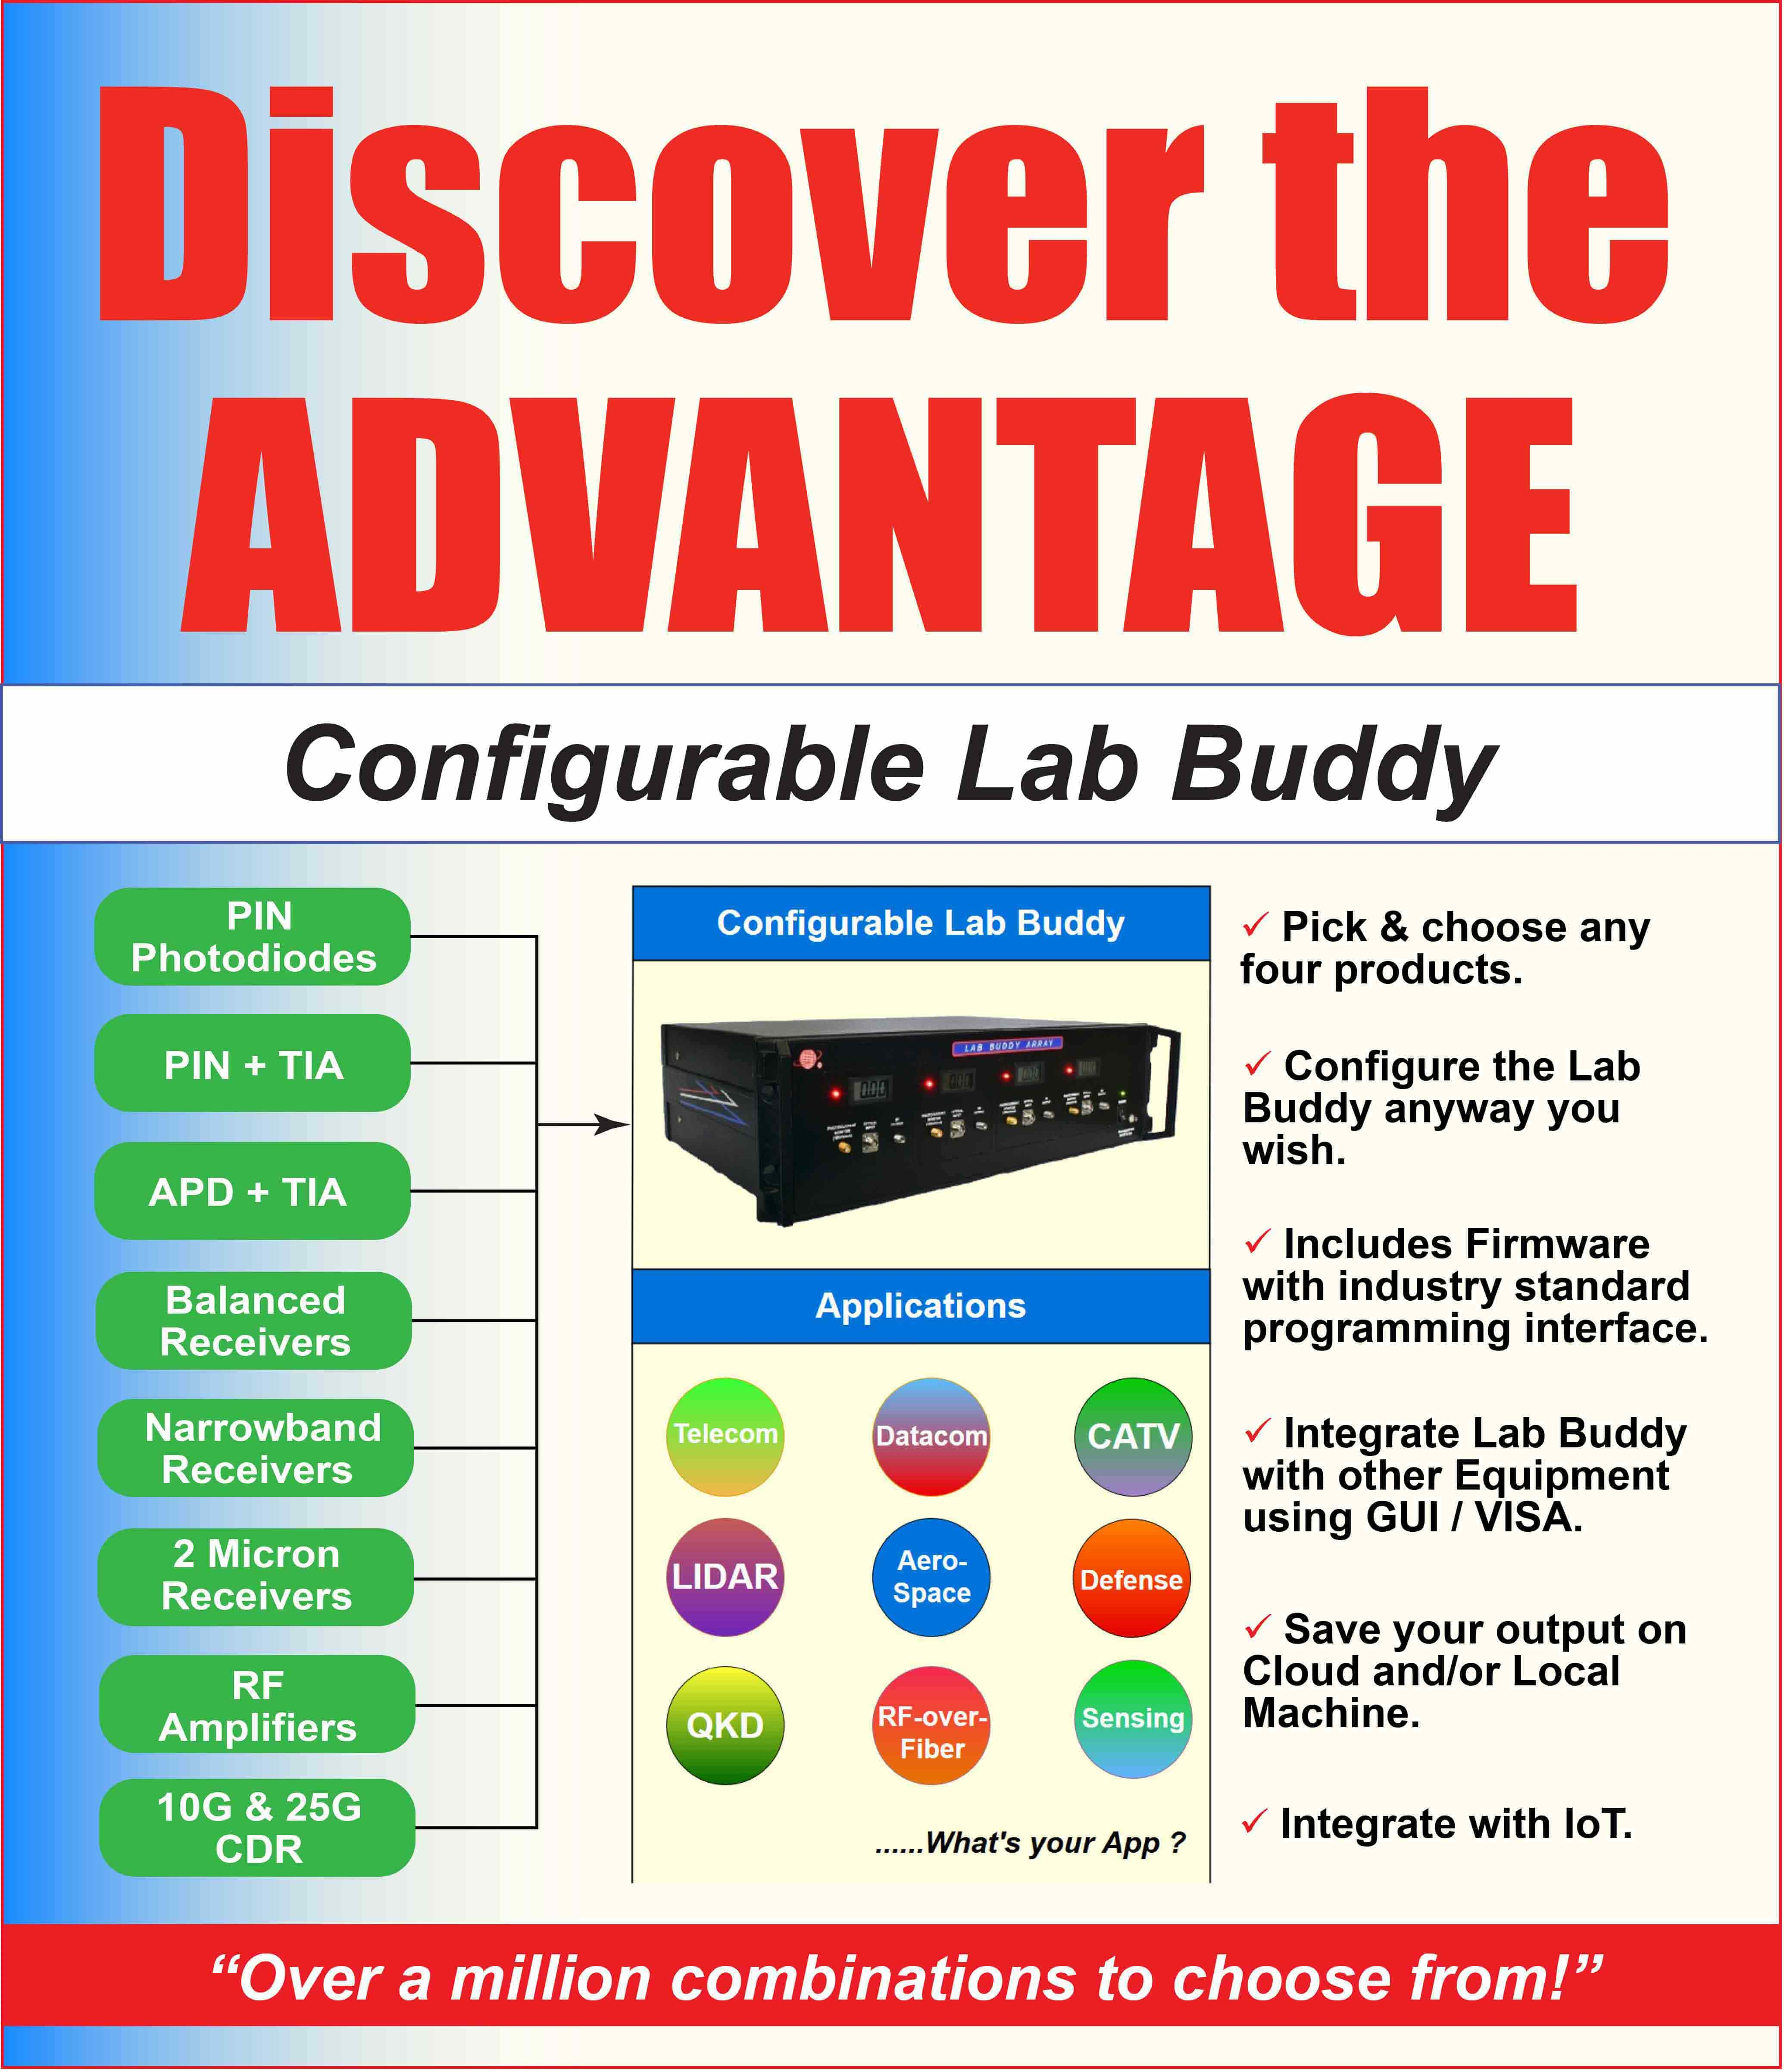 configurable lab buddy by discovery semiconductors